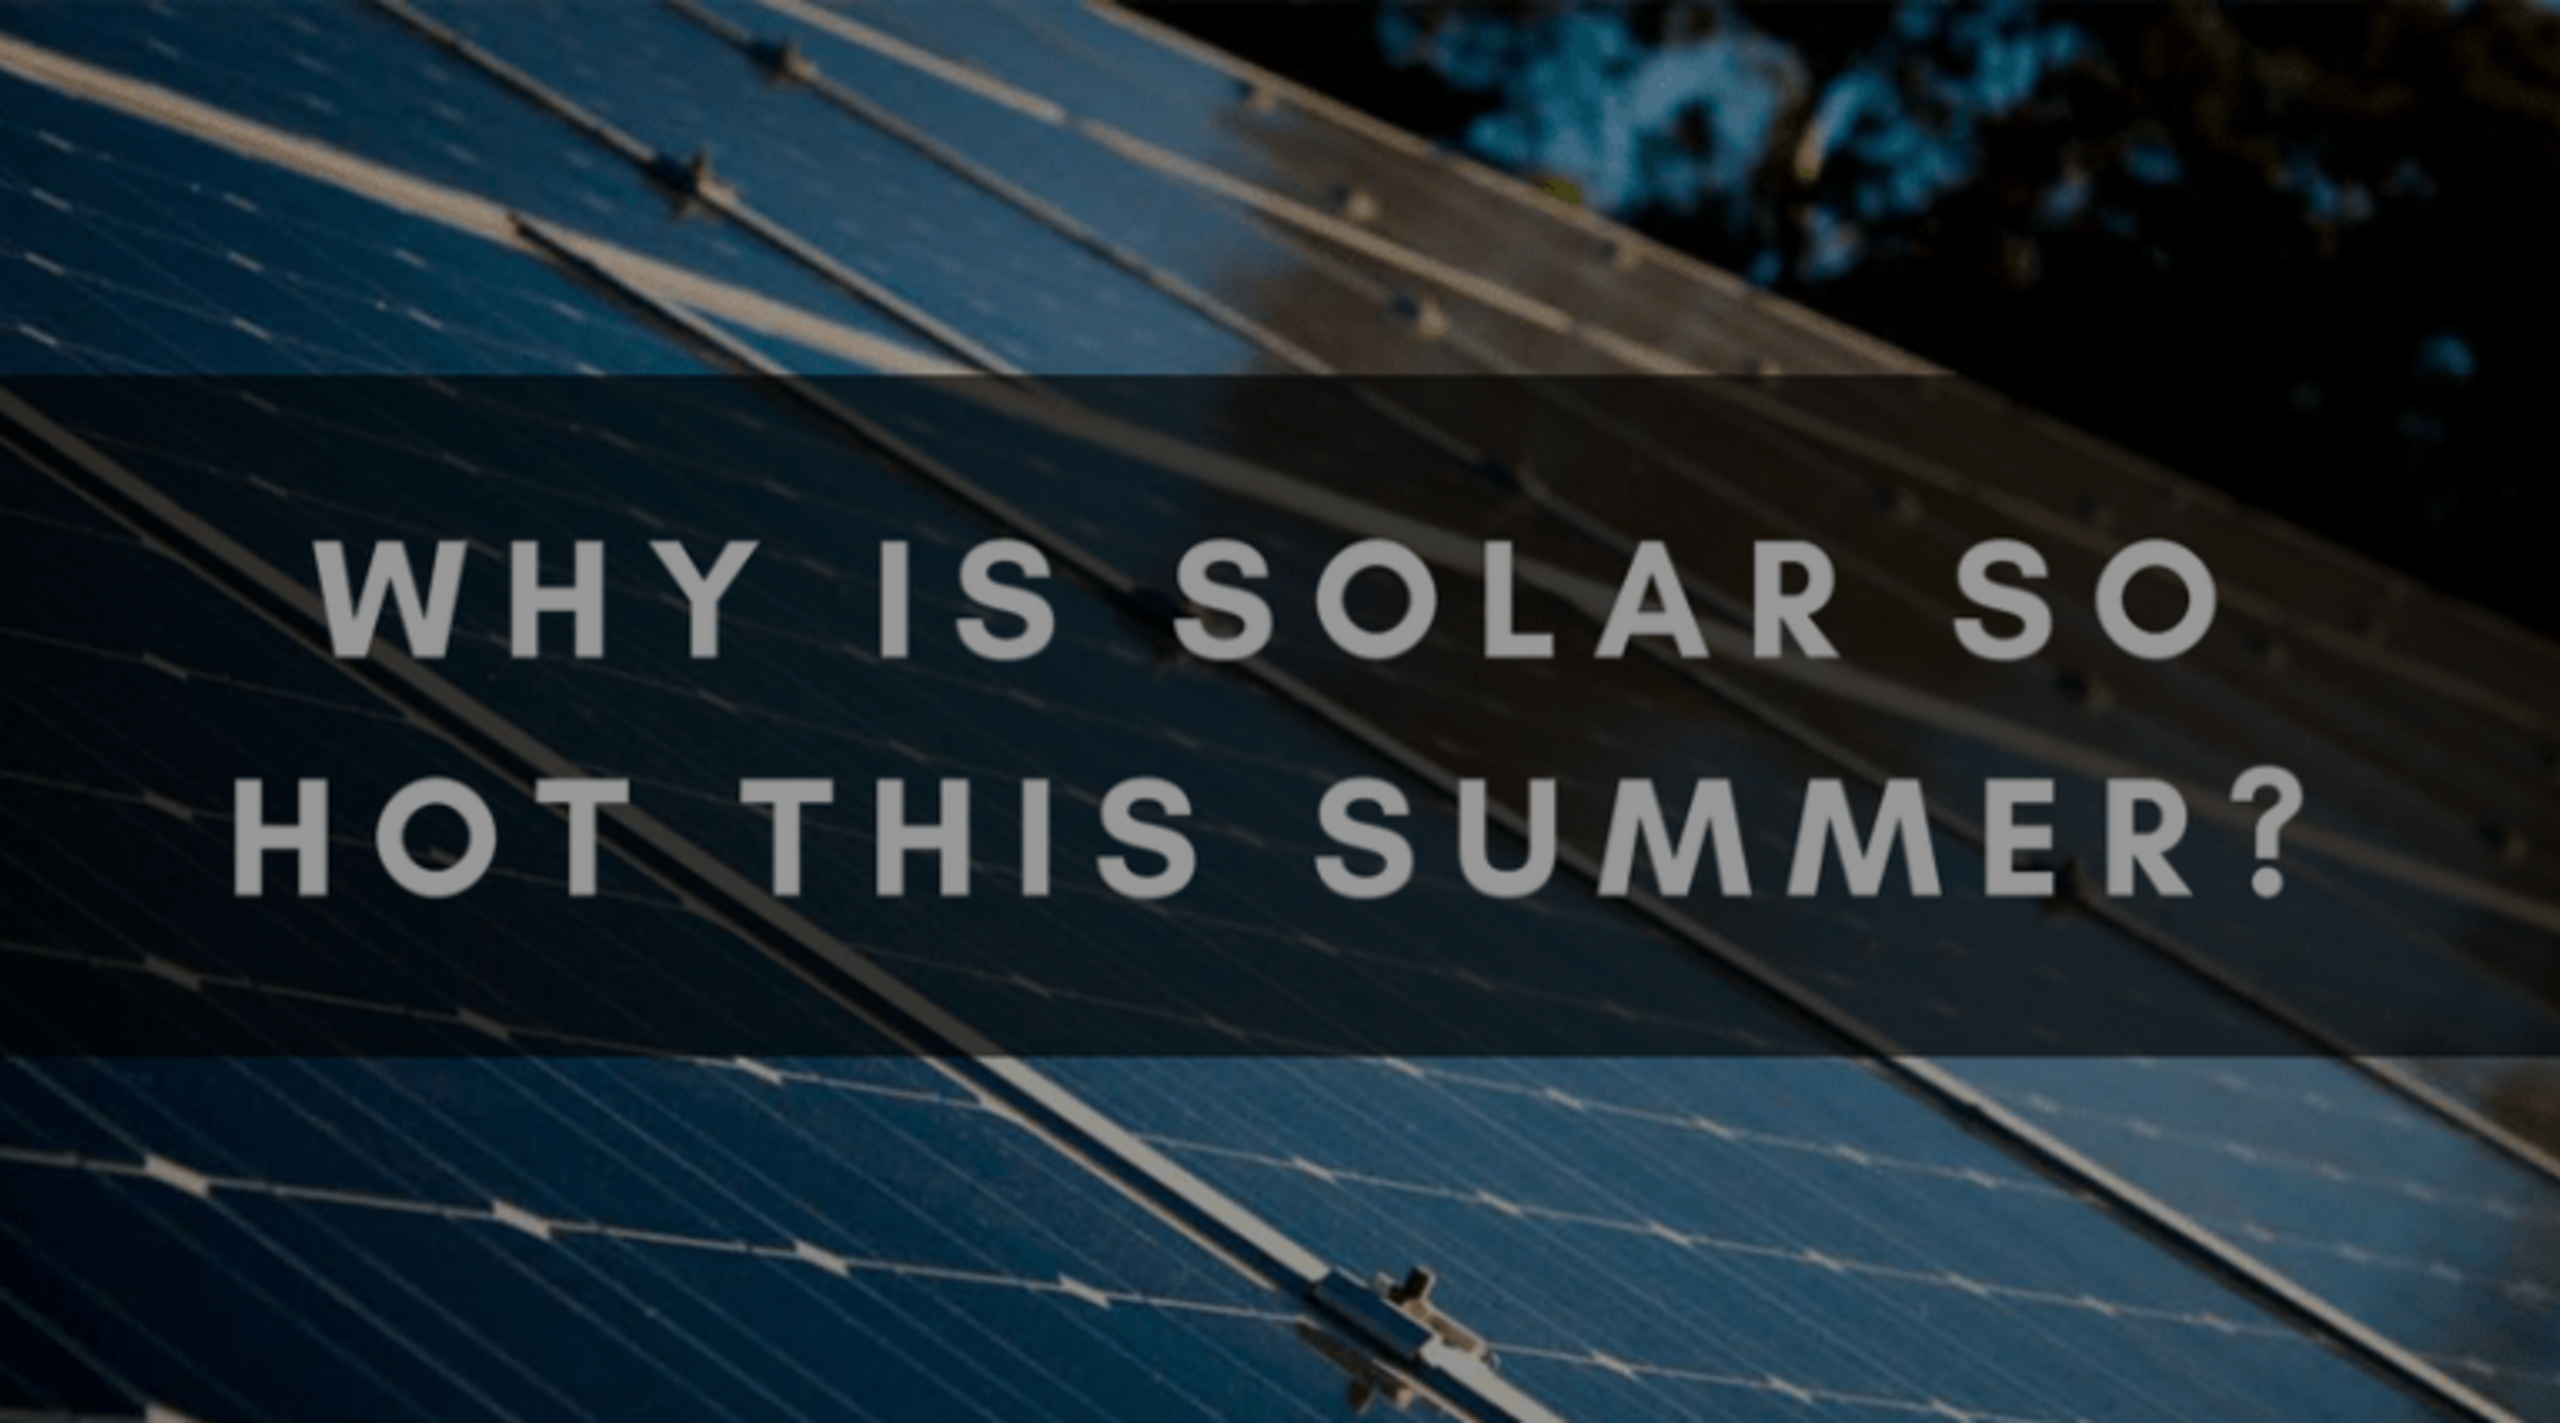 WHY IS SOLAR SO HOT THIS SUMMER?